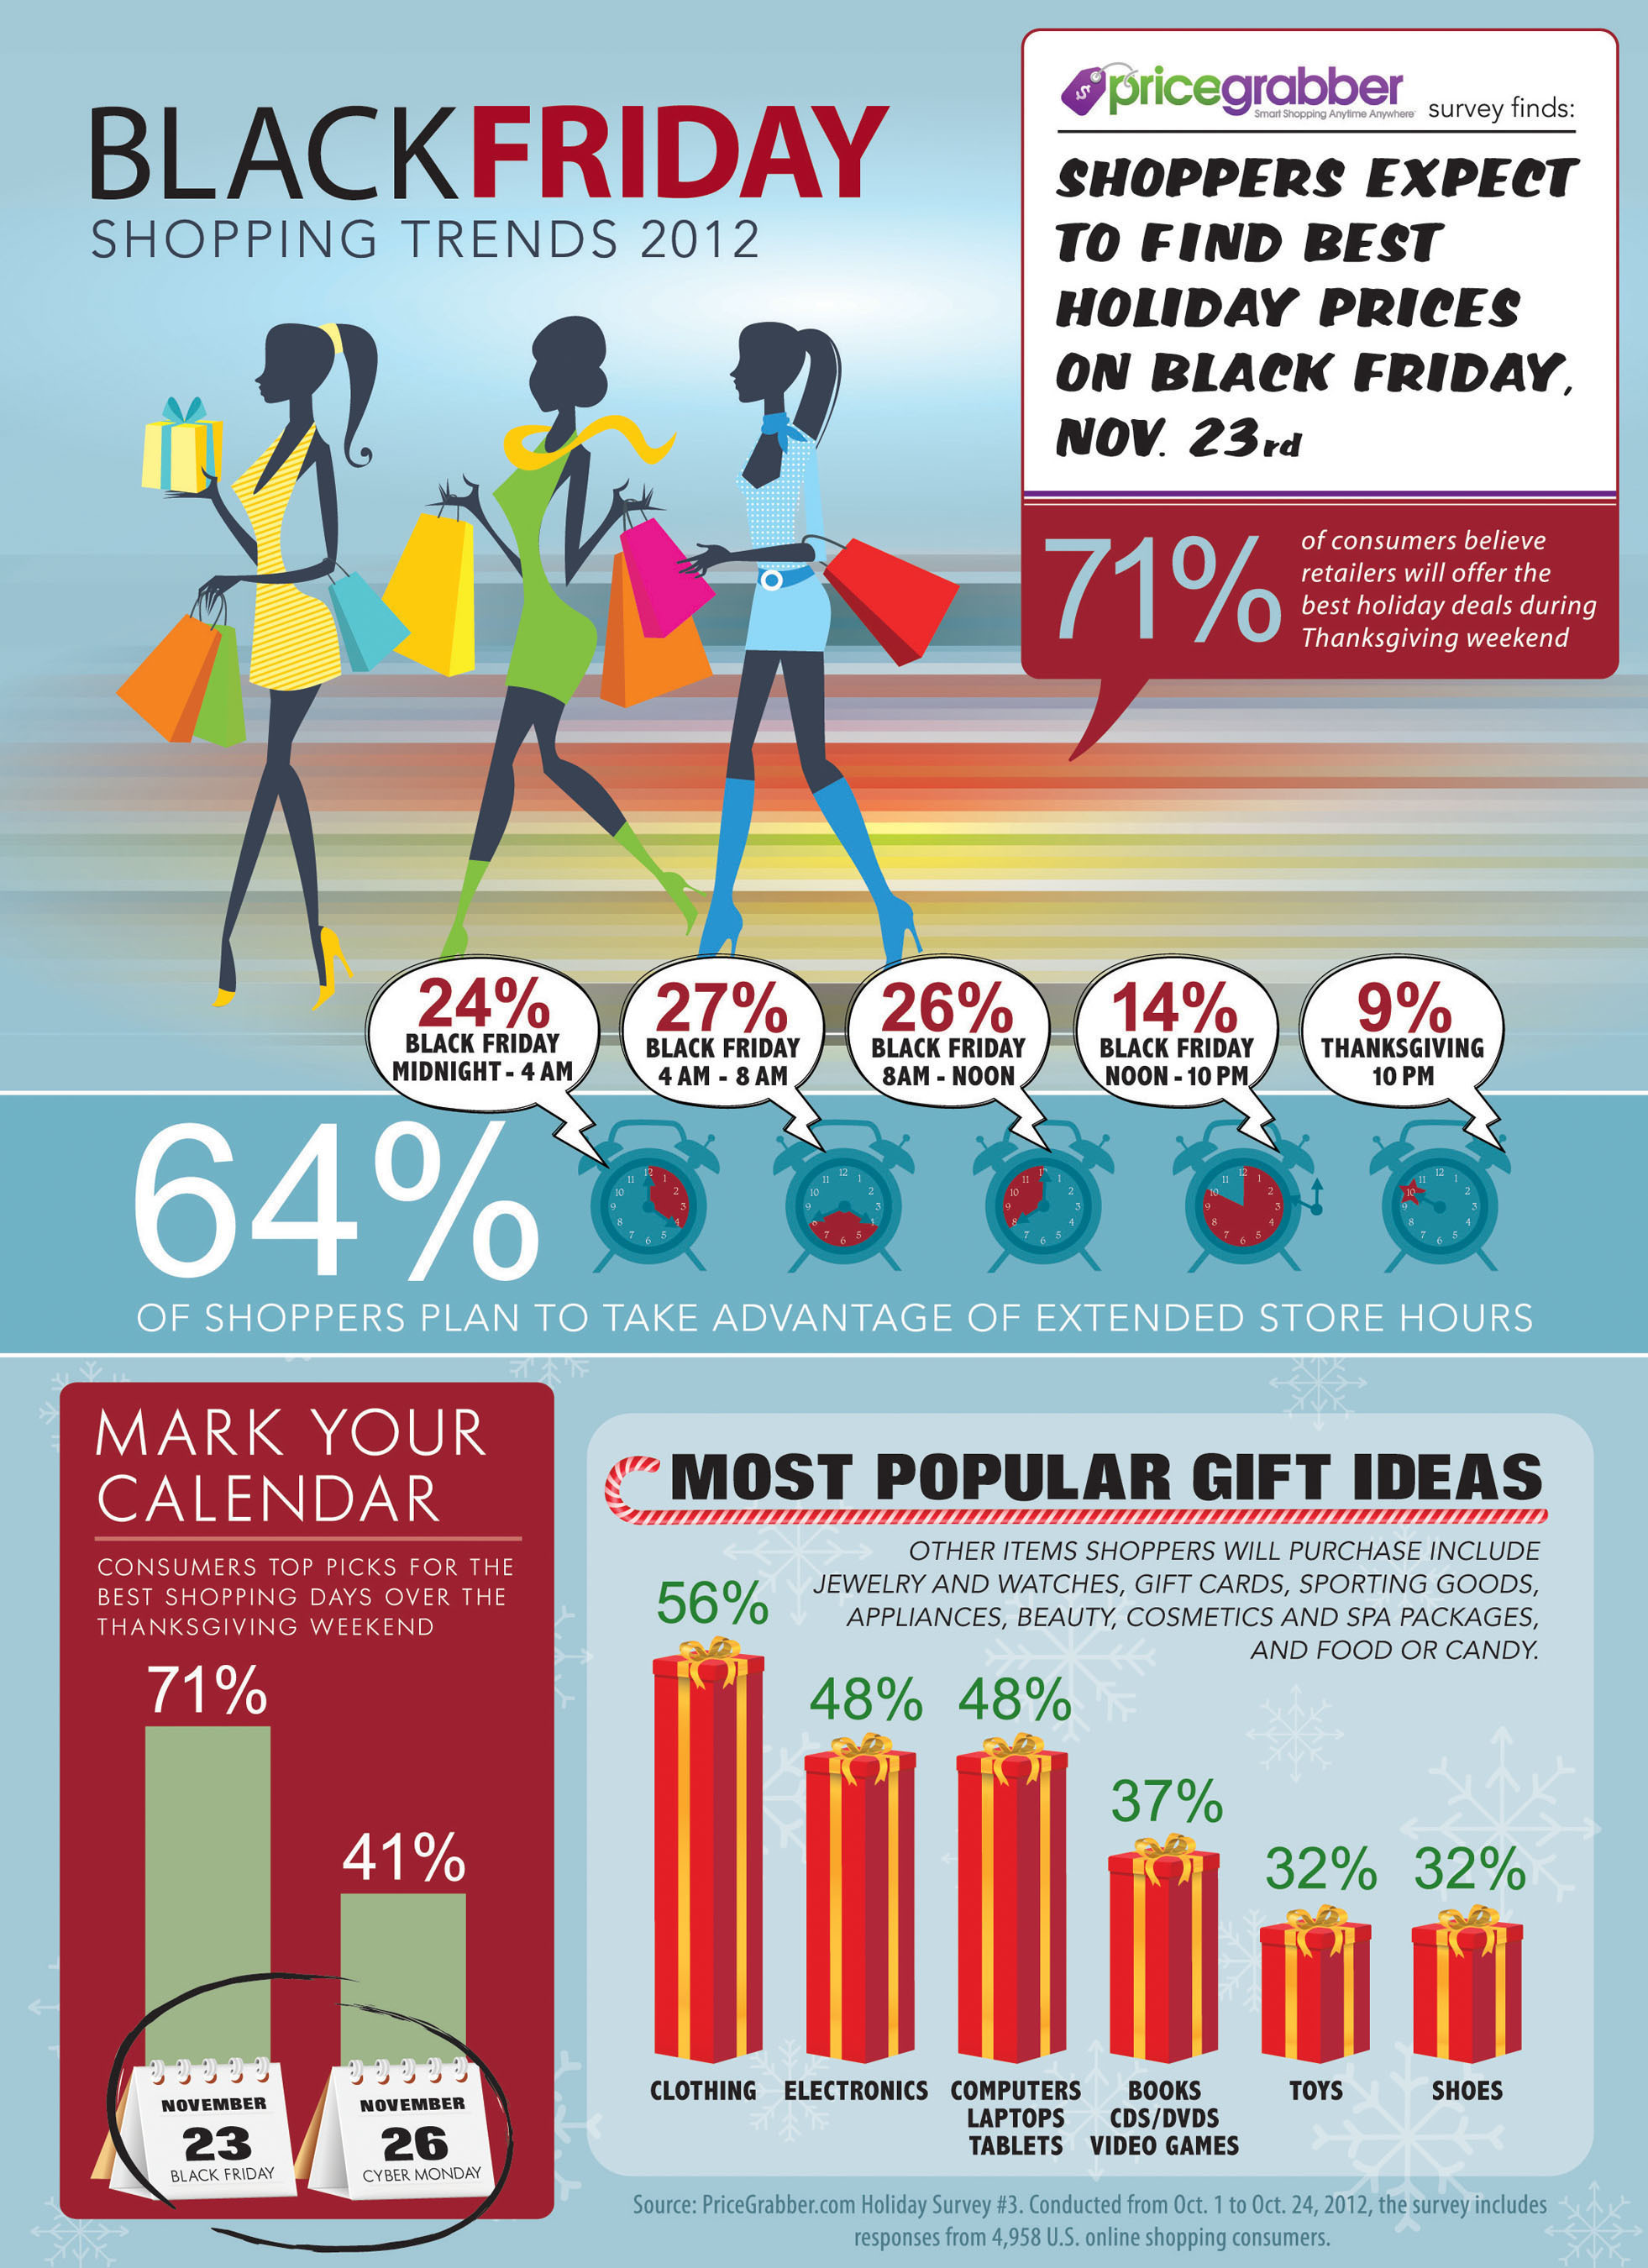 Seventy-one percent of consumers believe retailers will offer the best holiday deals during